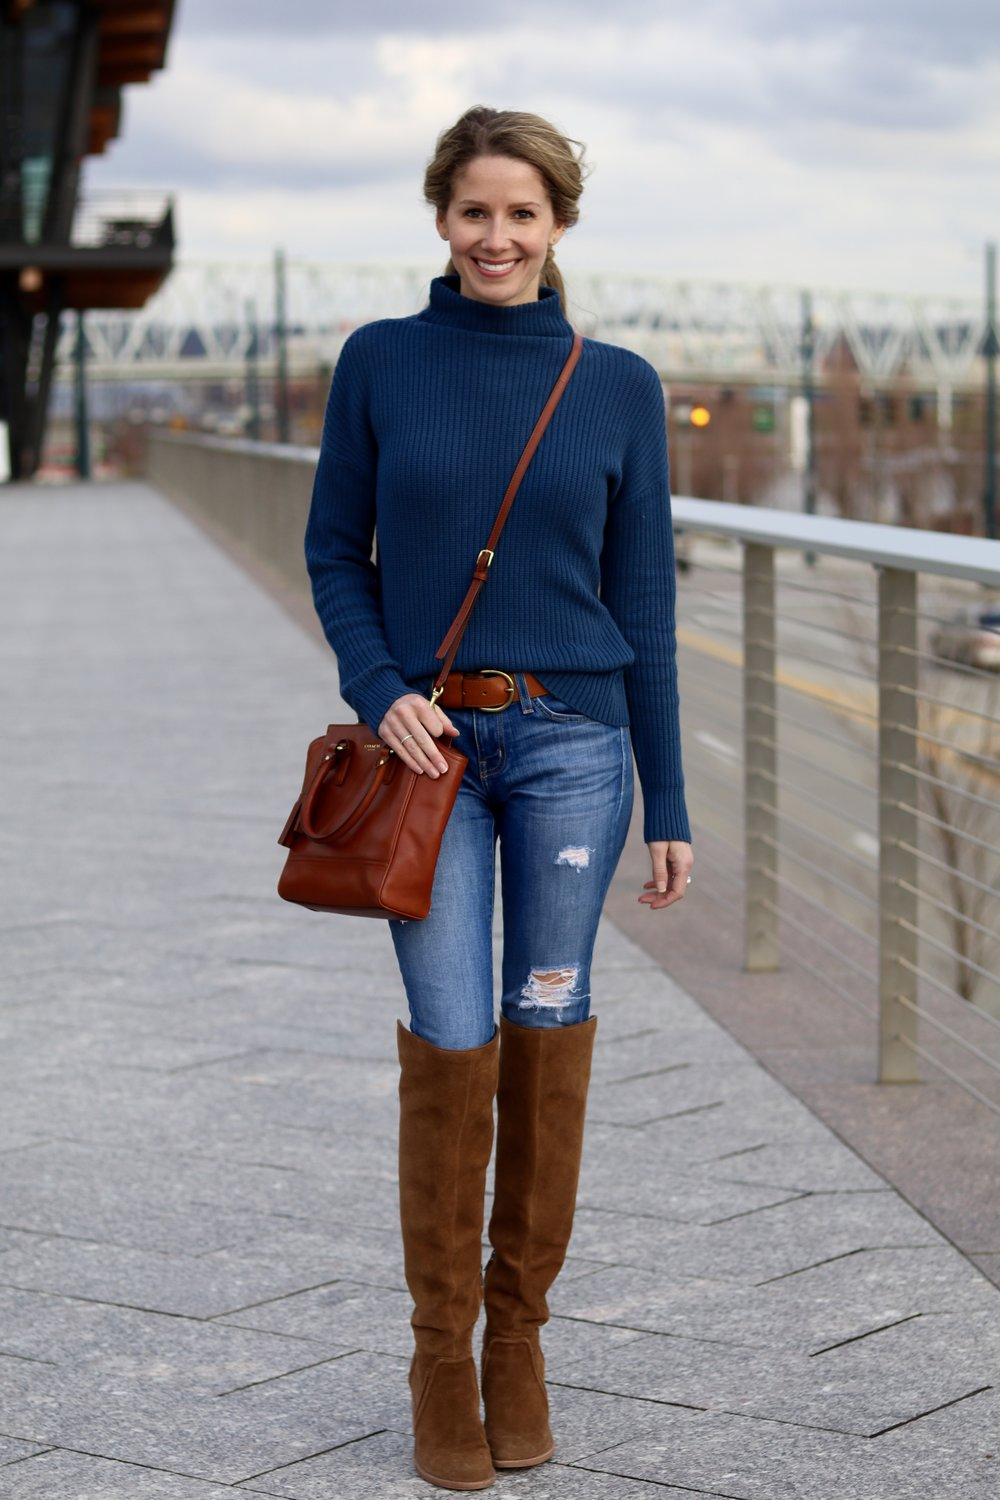 gilt edge | new favorite sweater